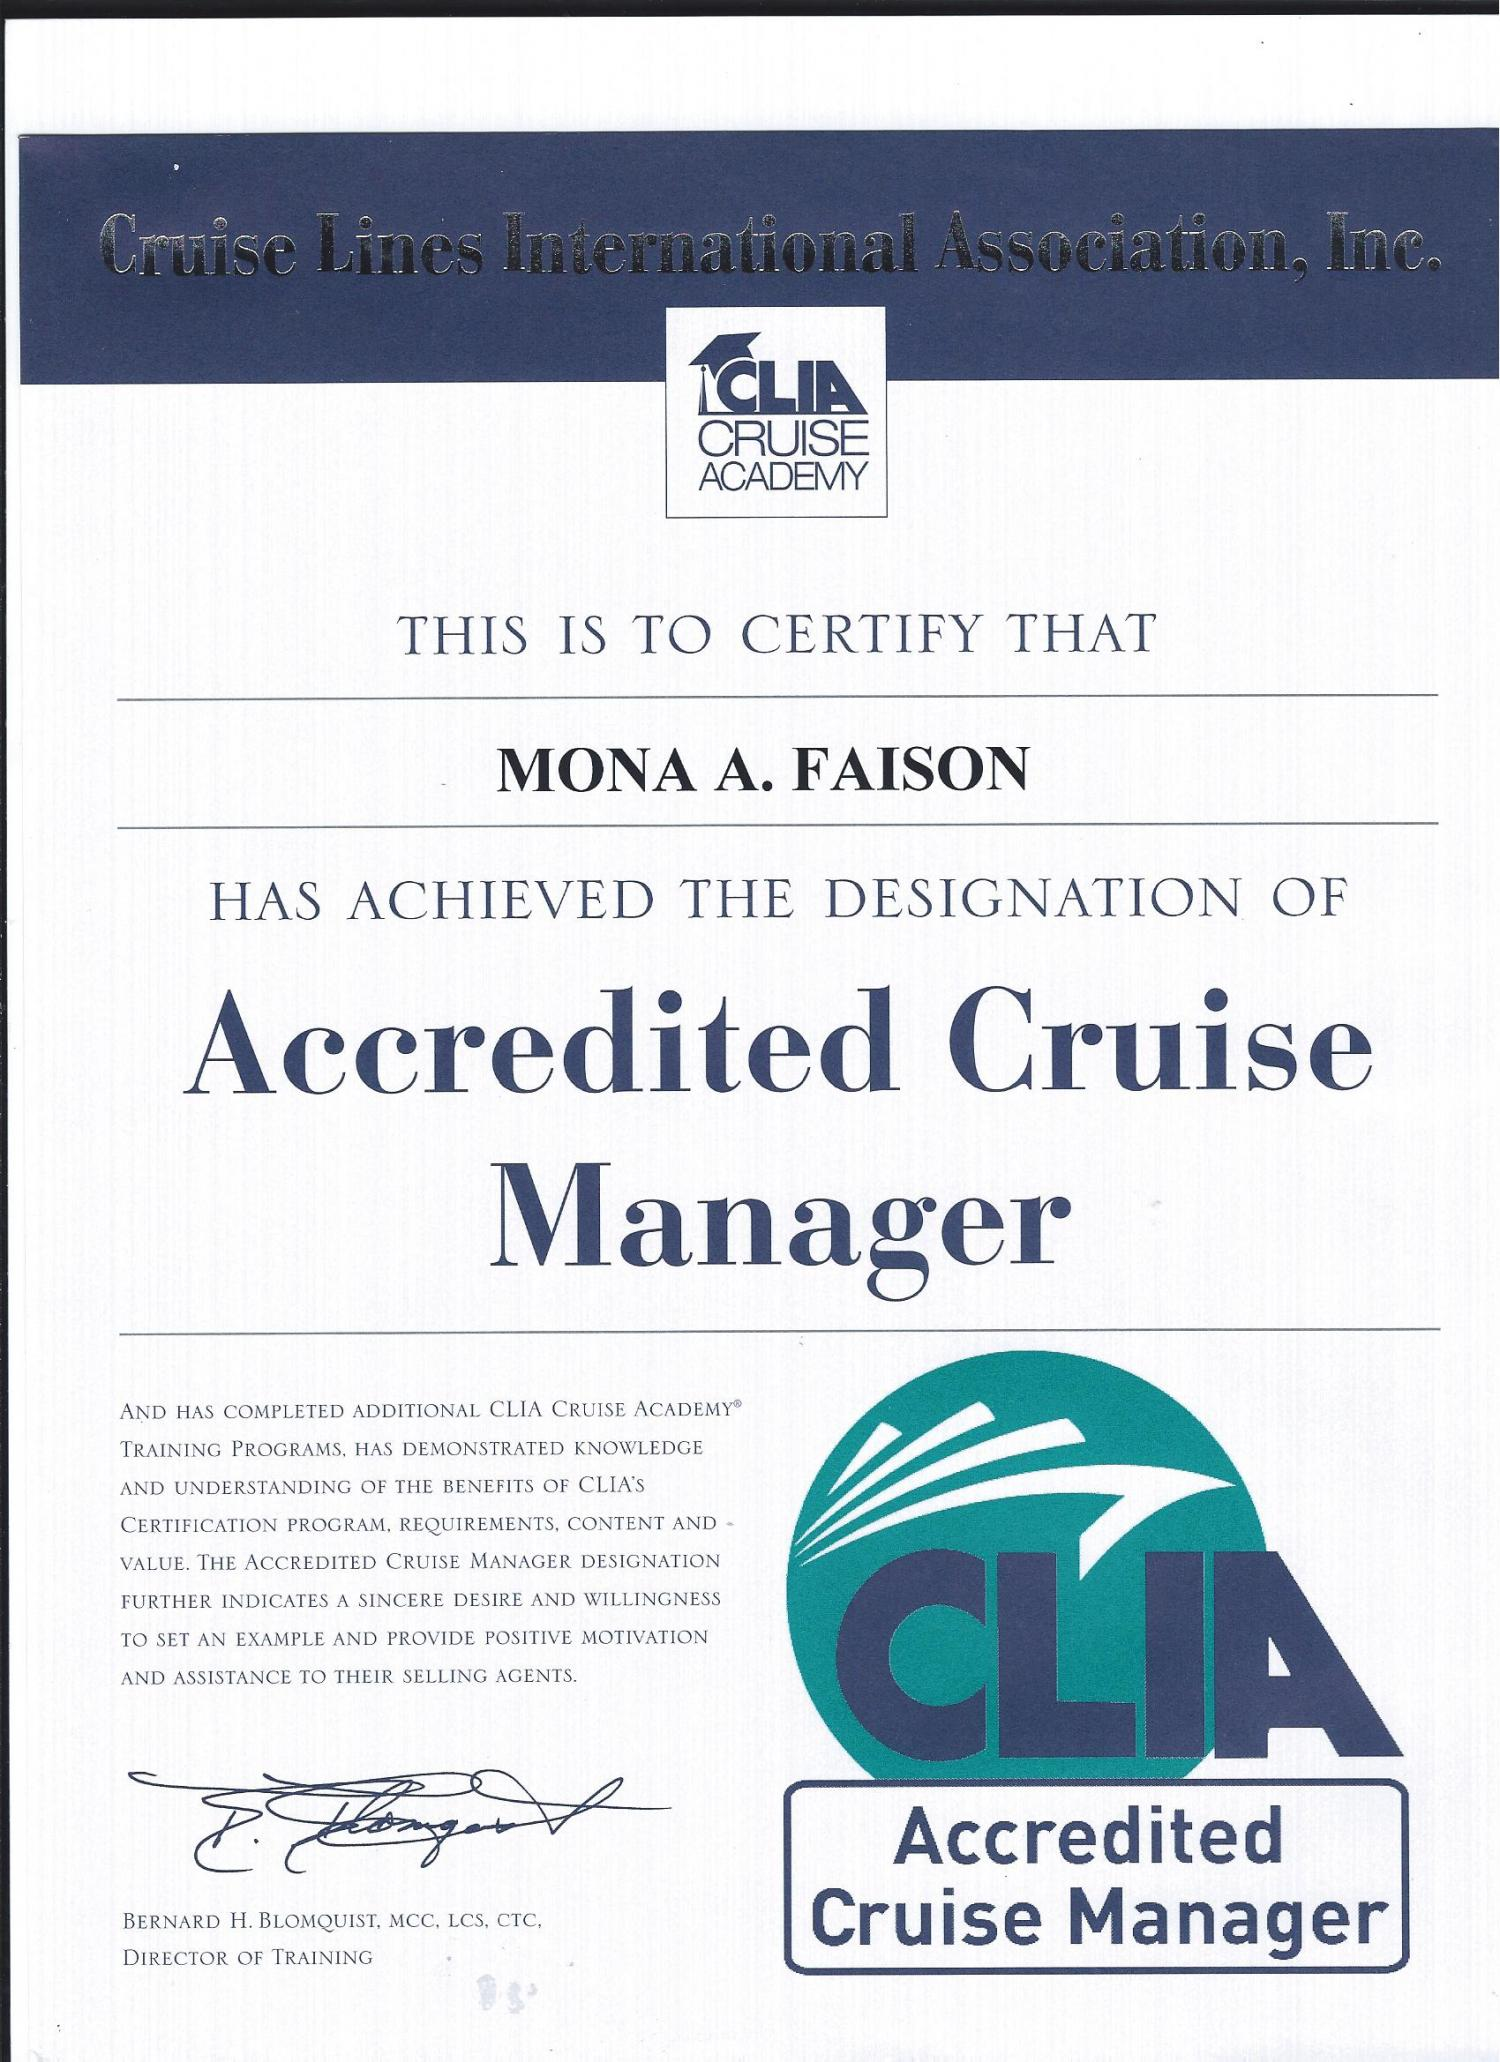 Accredited Cruise Manager